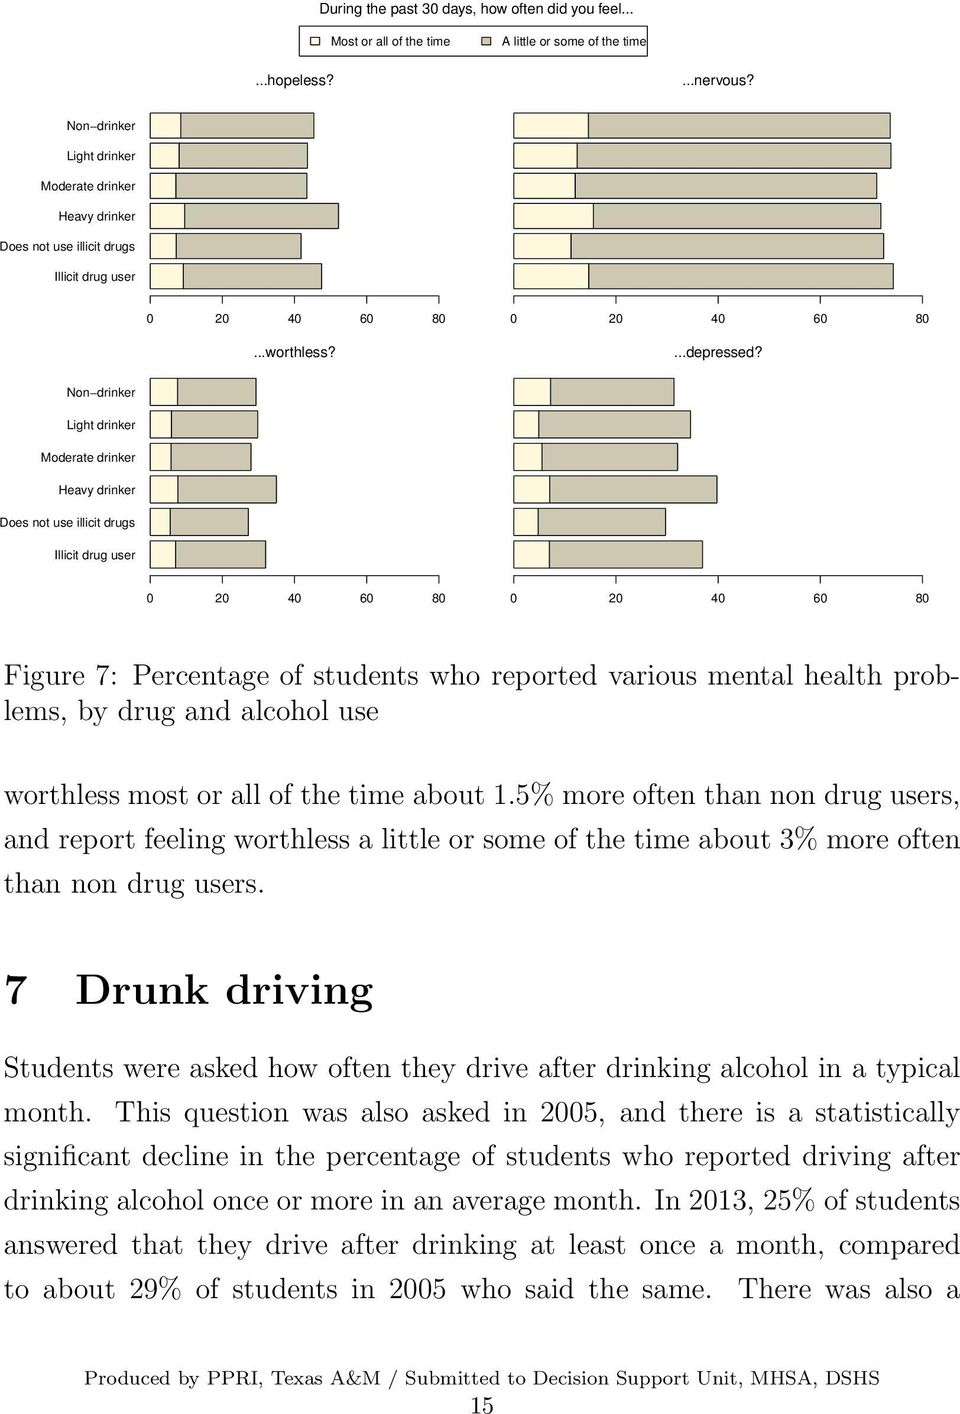 Non drinker Light drinker Moderate drinker Heavy drinker Does not use illicit drugs Illicit drug user 0 20 40 60 80 0 20 40 60 80 Figure 7: Percentage of students who reported various mental health